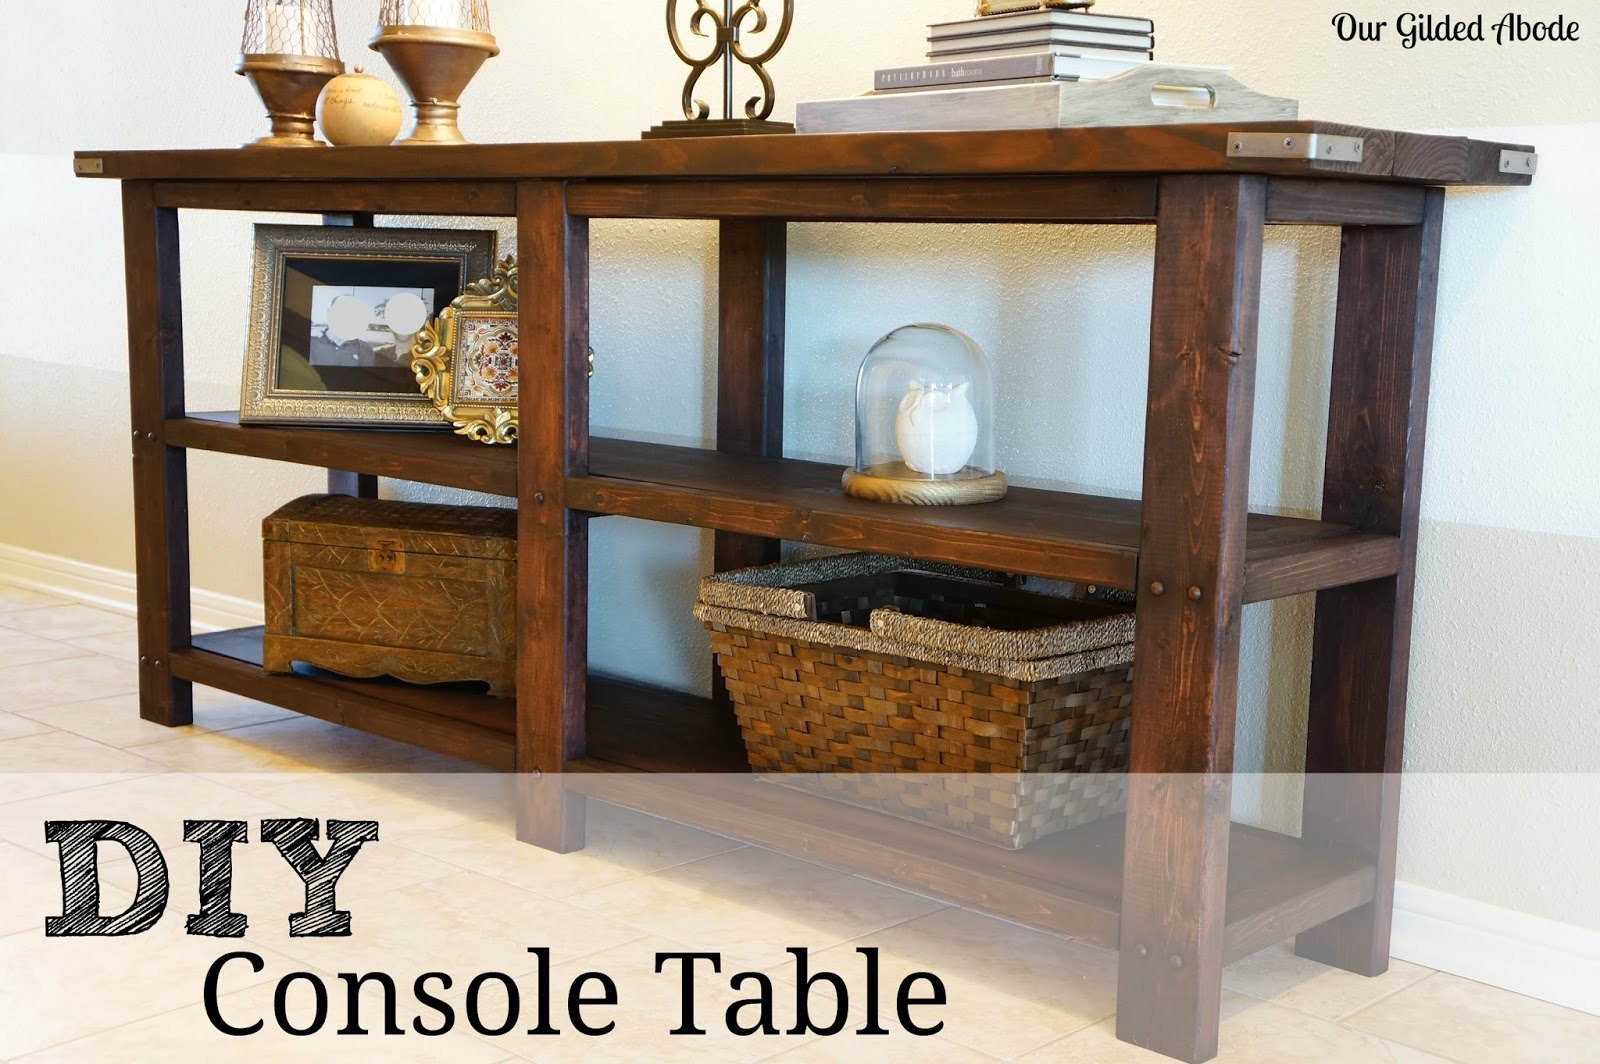 diy console table reveal. Black Bedroom Furniture Sets. Home Design Ideas